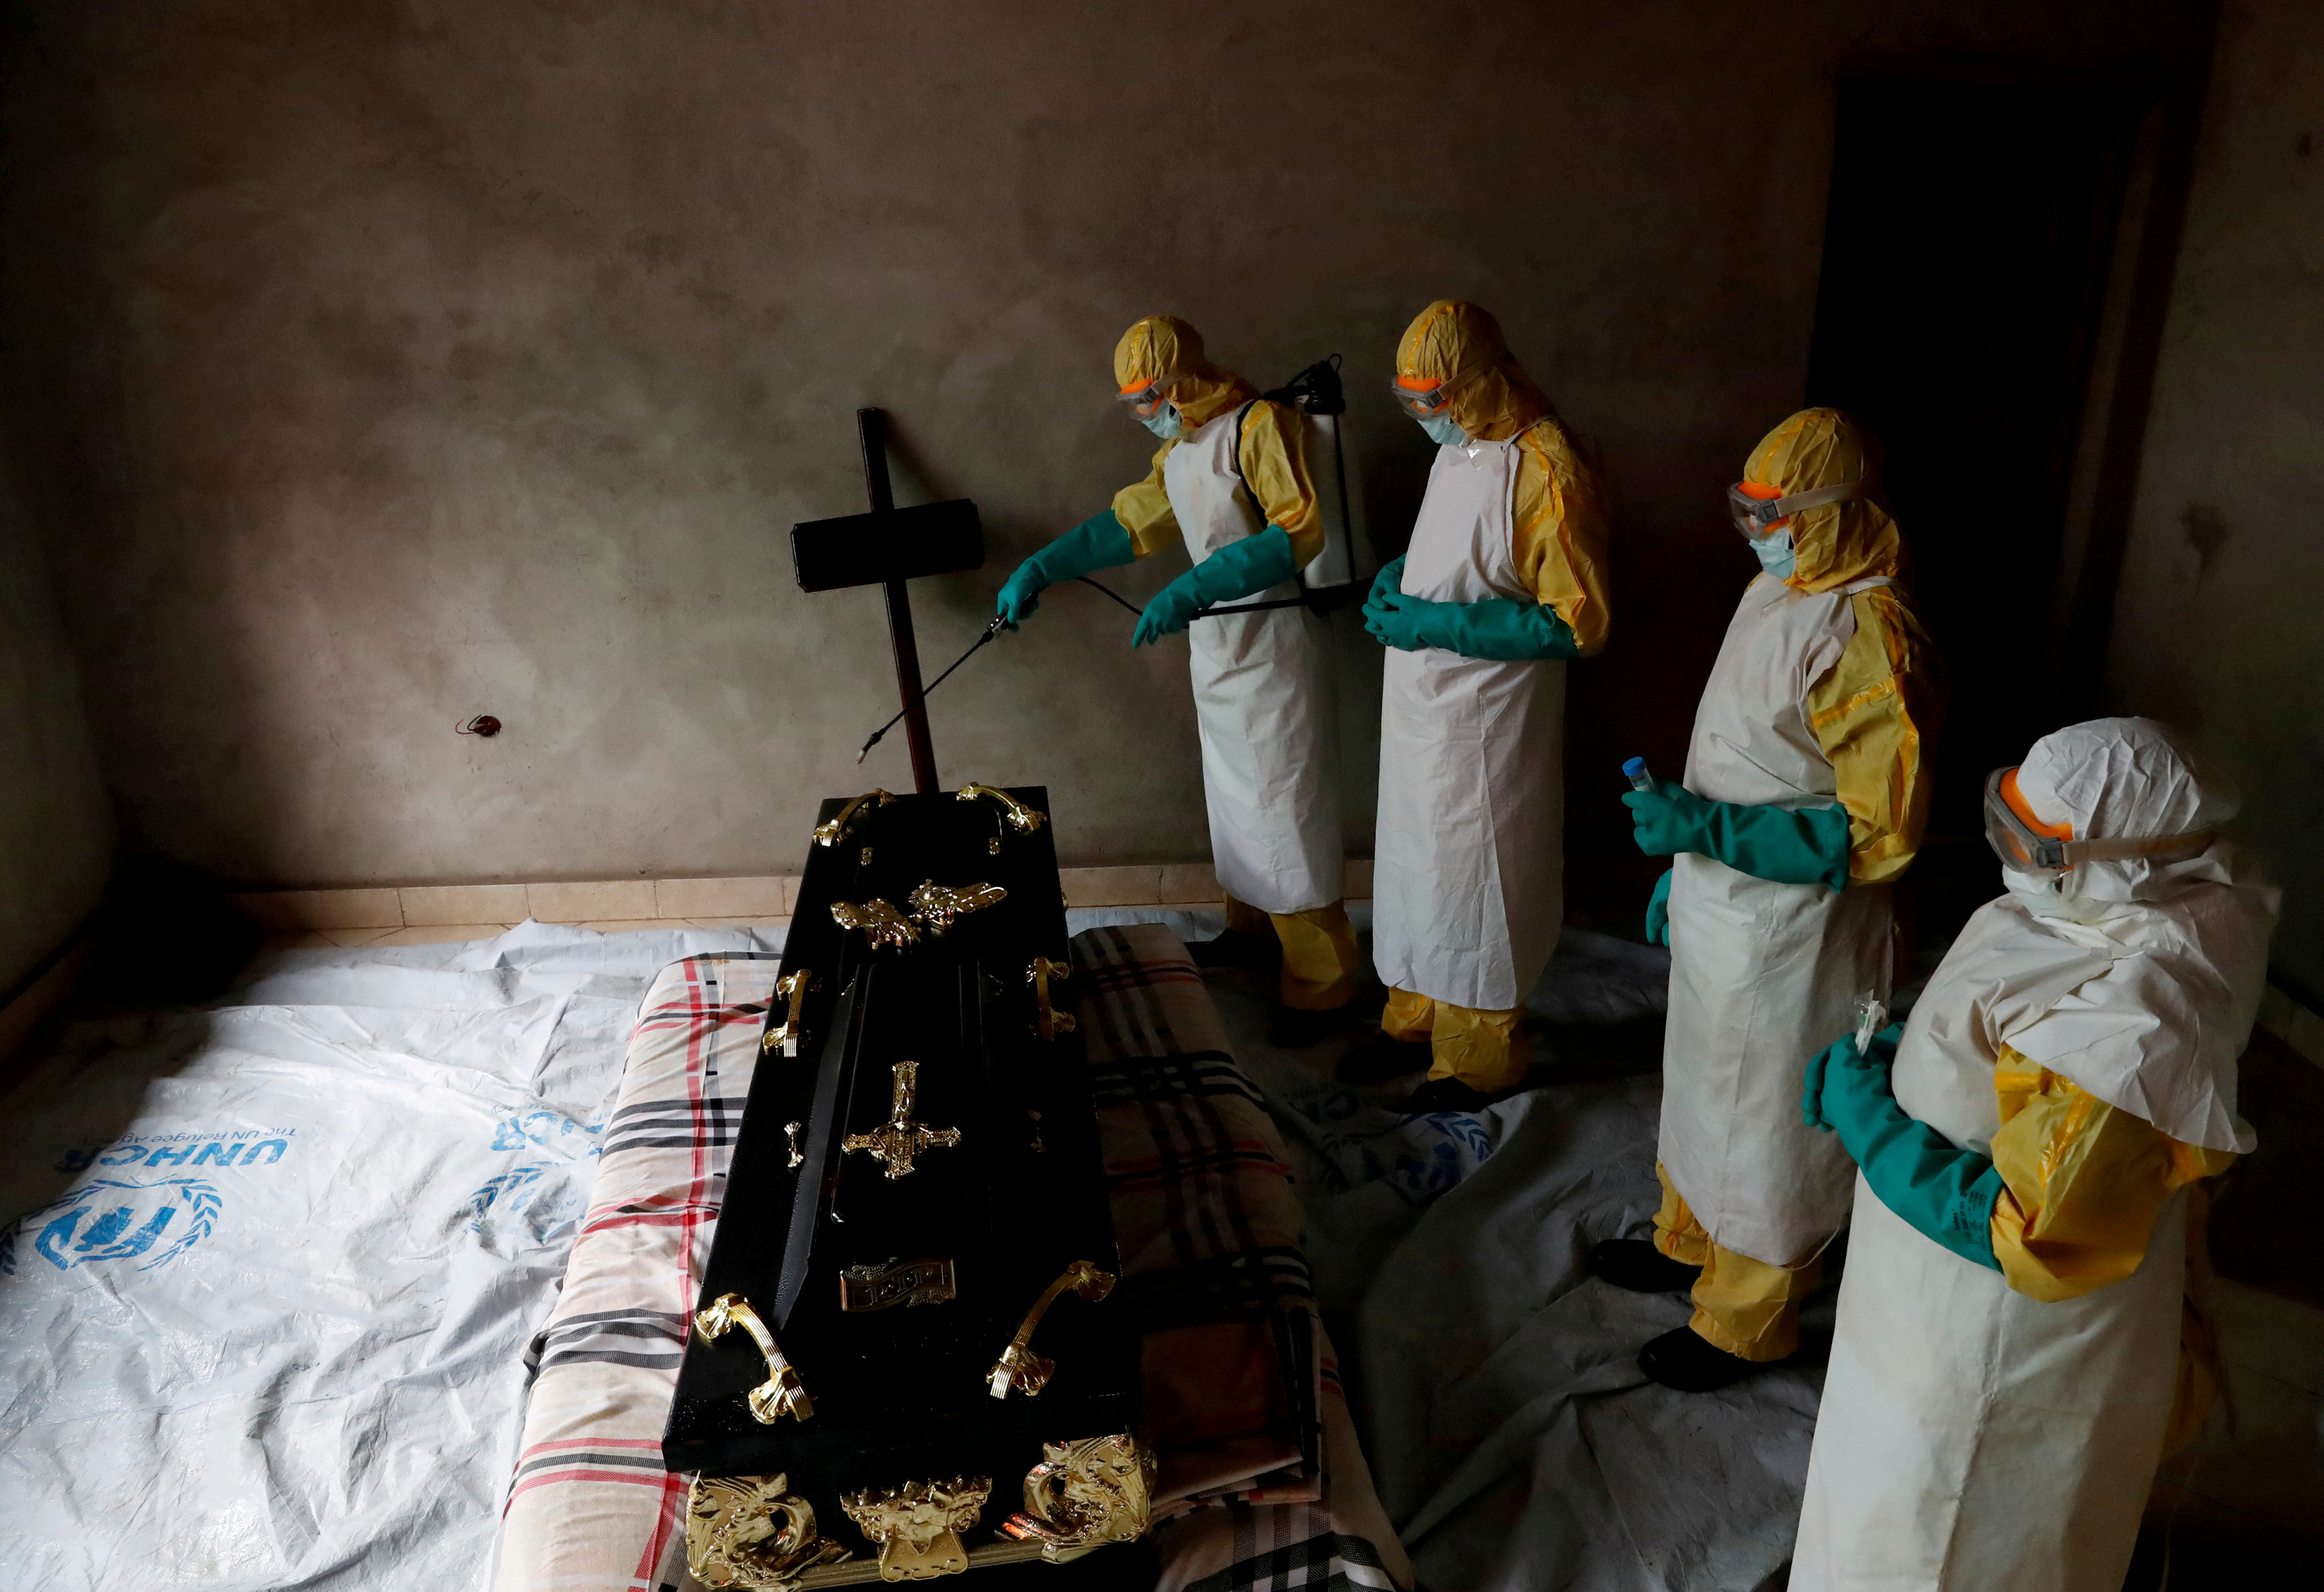 FILE PHOTO: A healthcare worker sprays a room during a funeral of a person who is suspected of dying of Ebola in Beni, North Kivu Province of Democratic Republic of Congo, December 9, 2018. REUTERS/Goran Tomasevic/File Photo